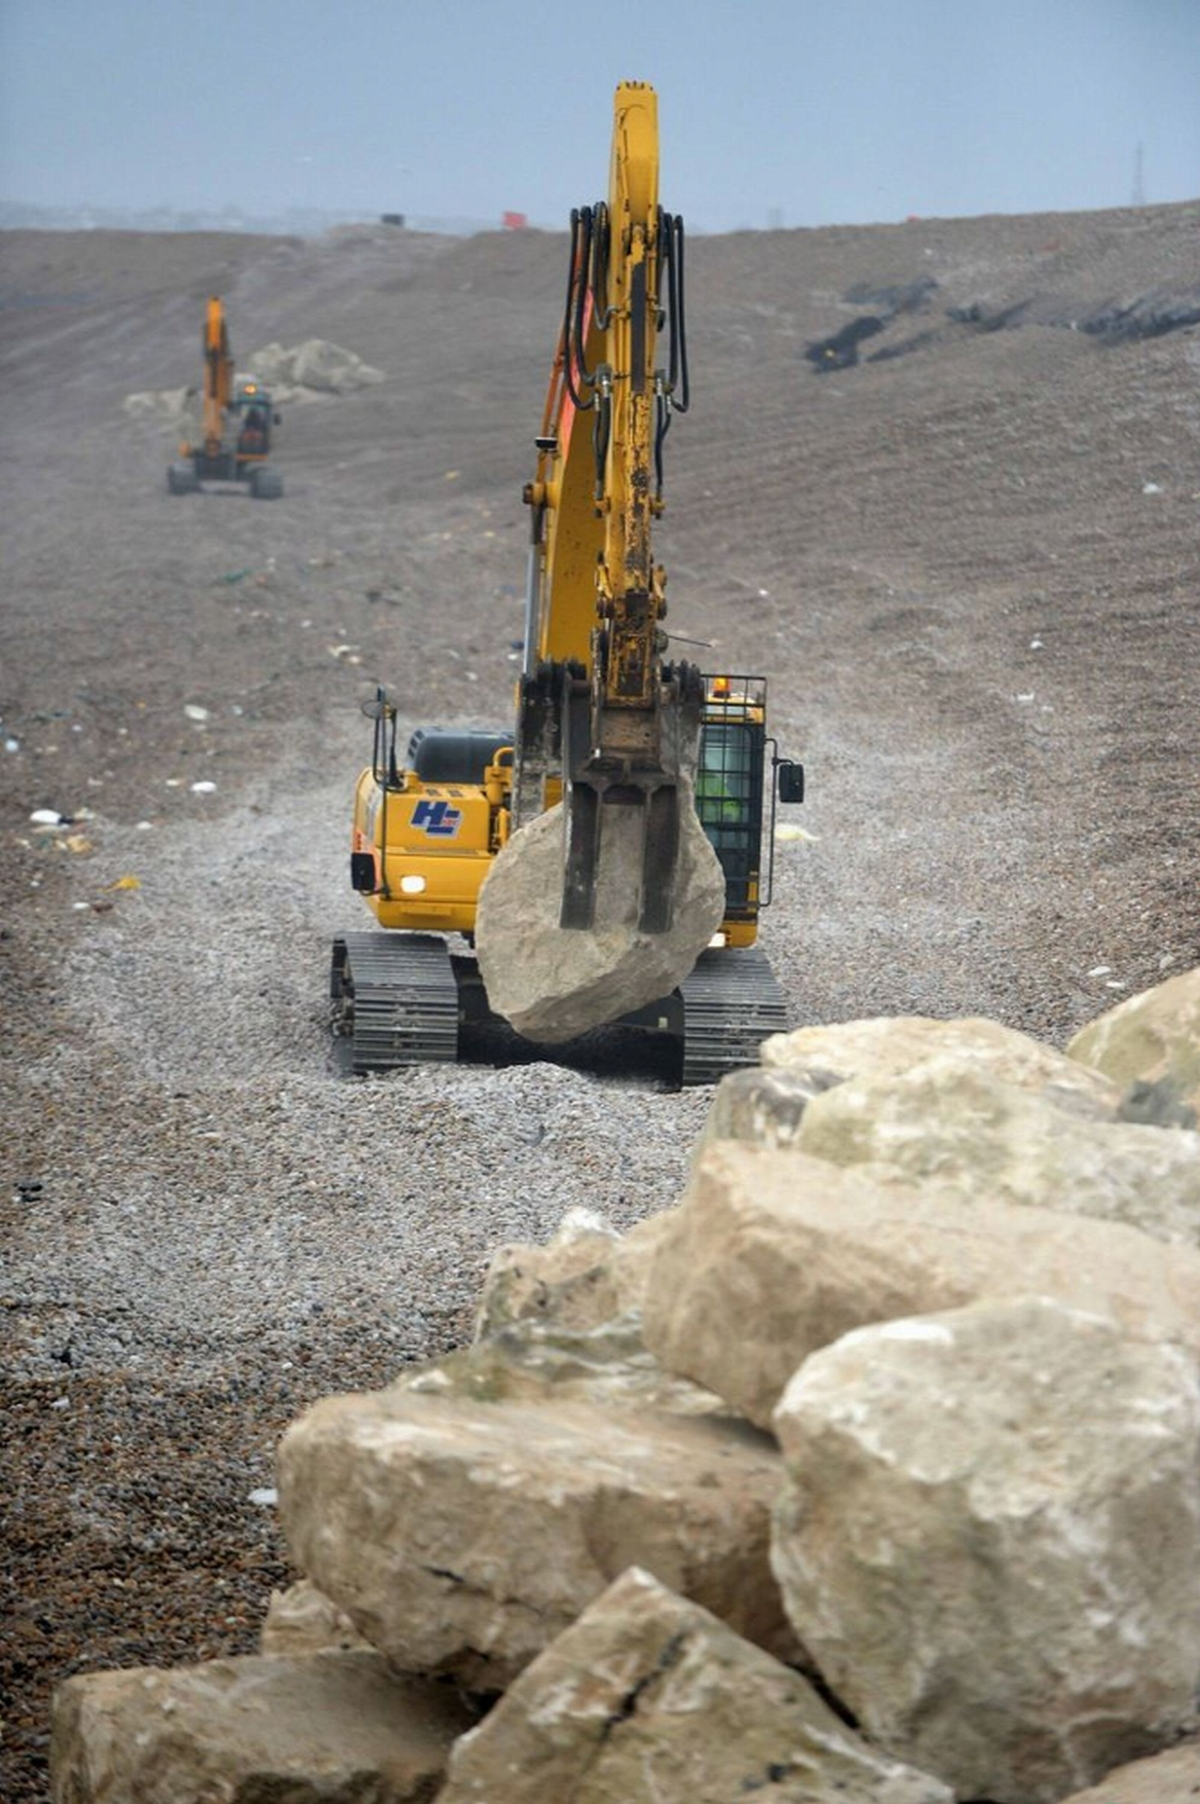 A digger on Chesil Beach